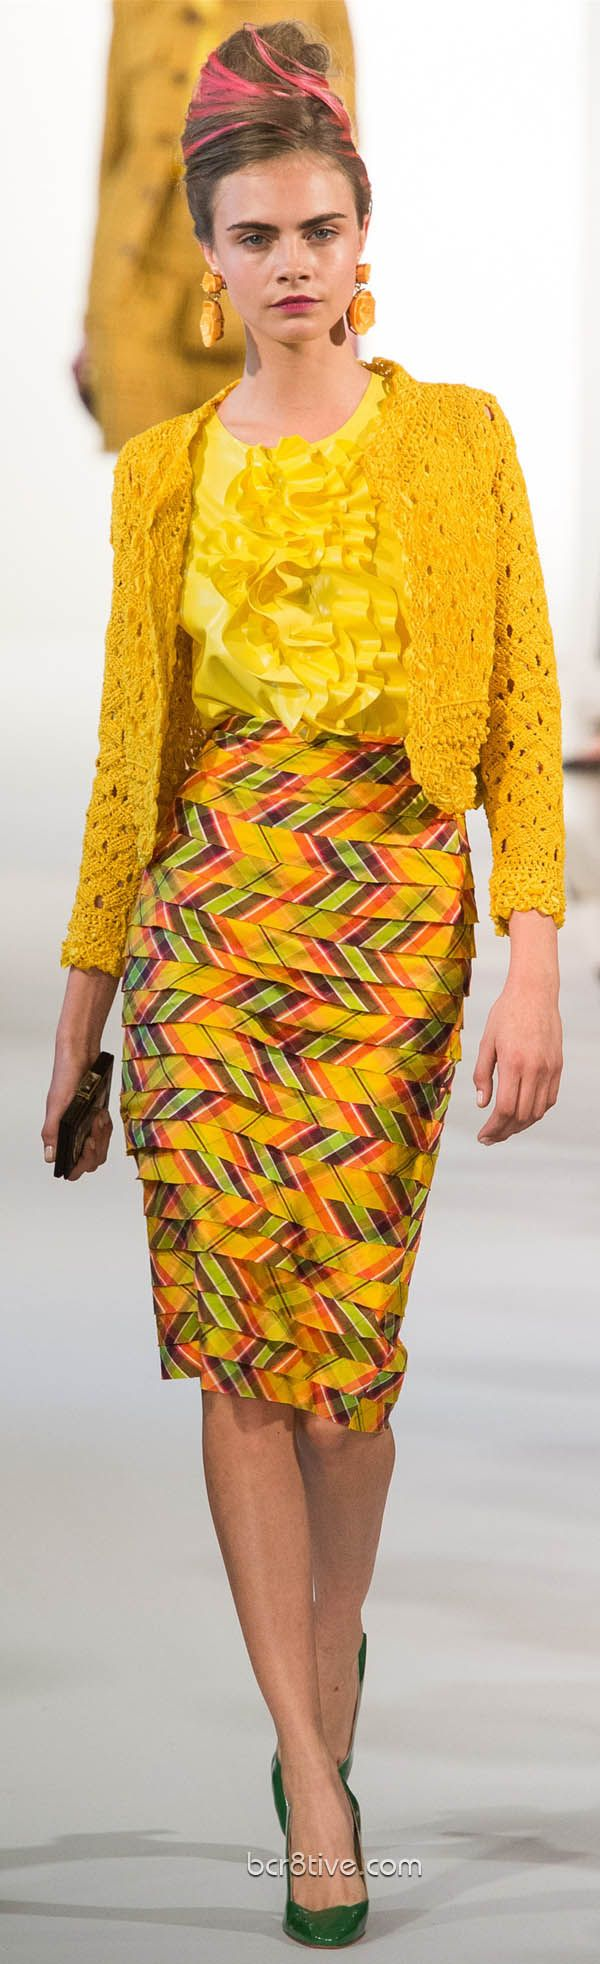 Oscar De La Renta Spring Summer Ready to Wear 2013  Canary yellow crochet sweater and ruffle top with side way pattern chevron skirt